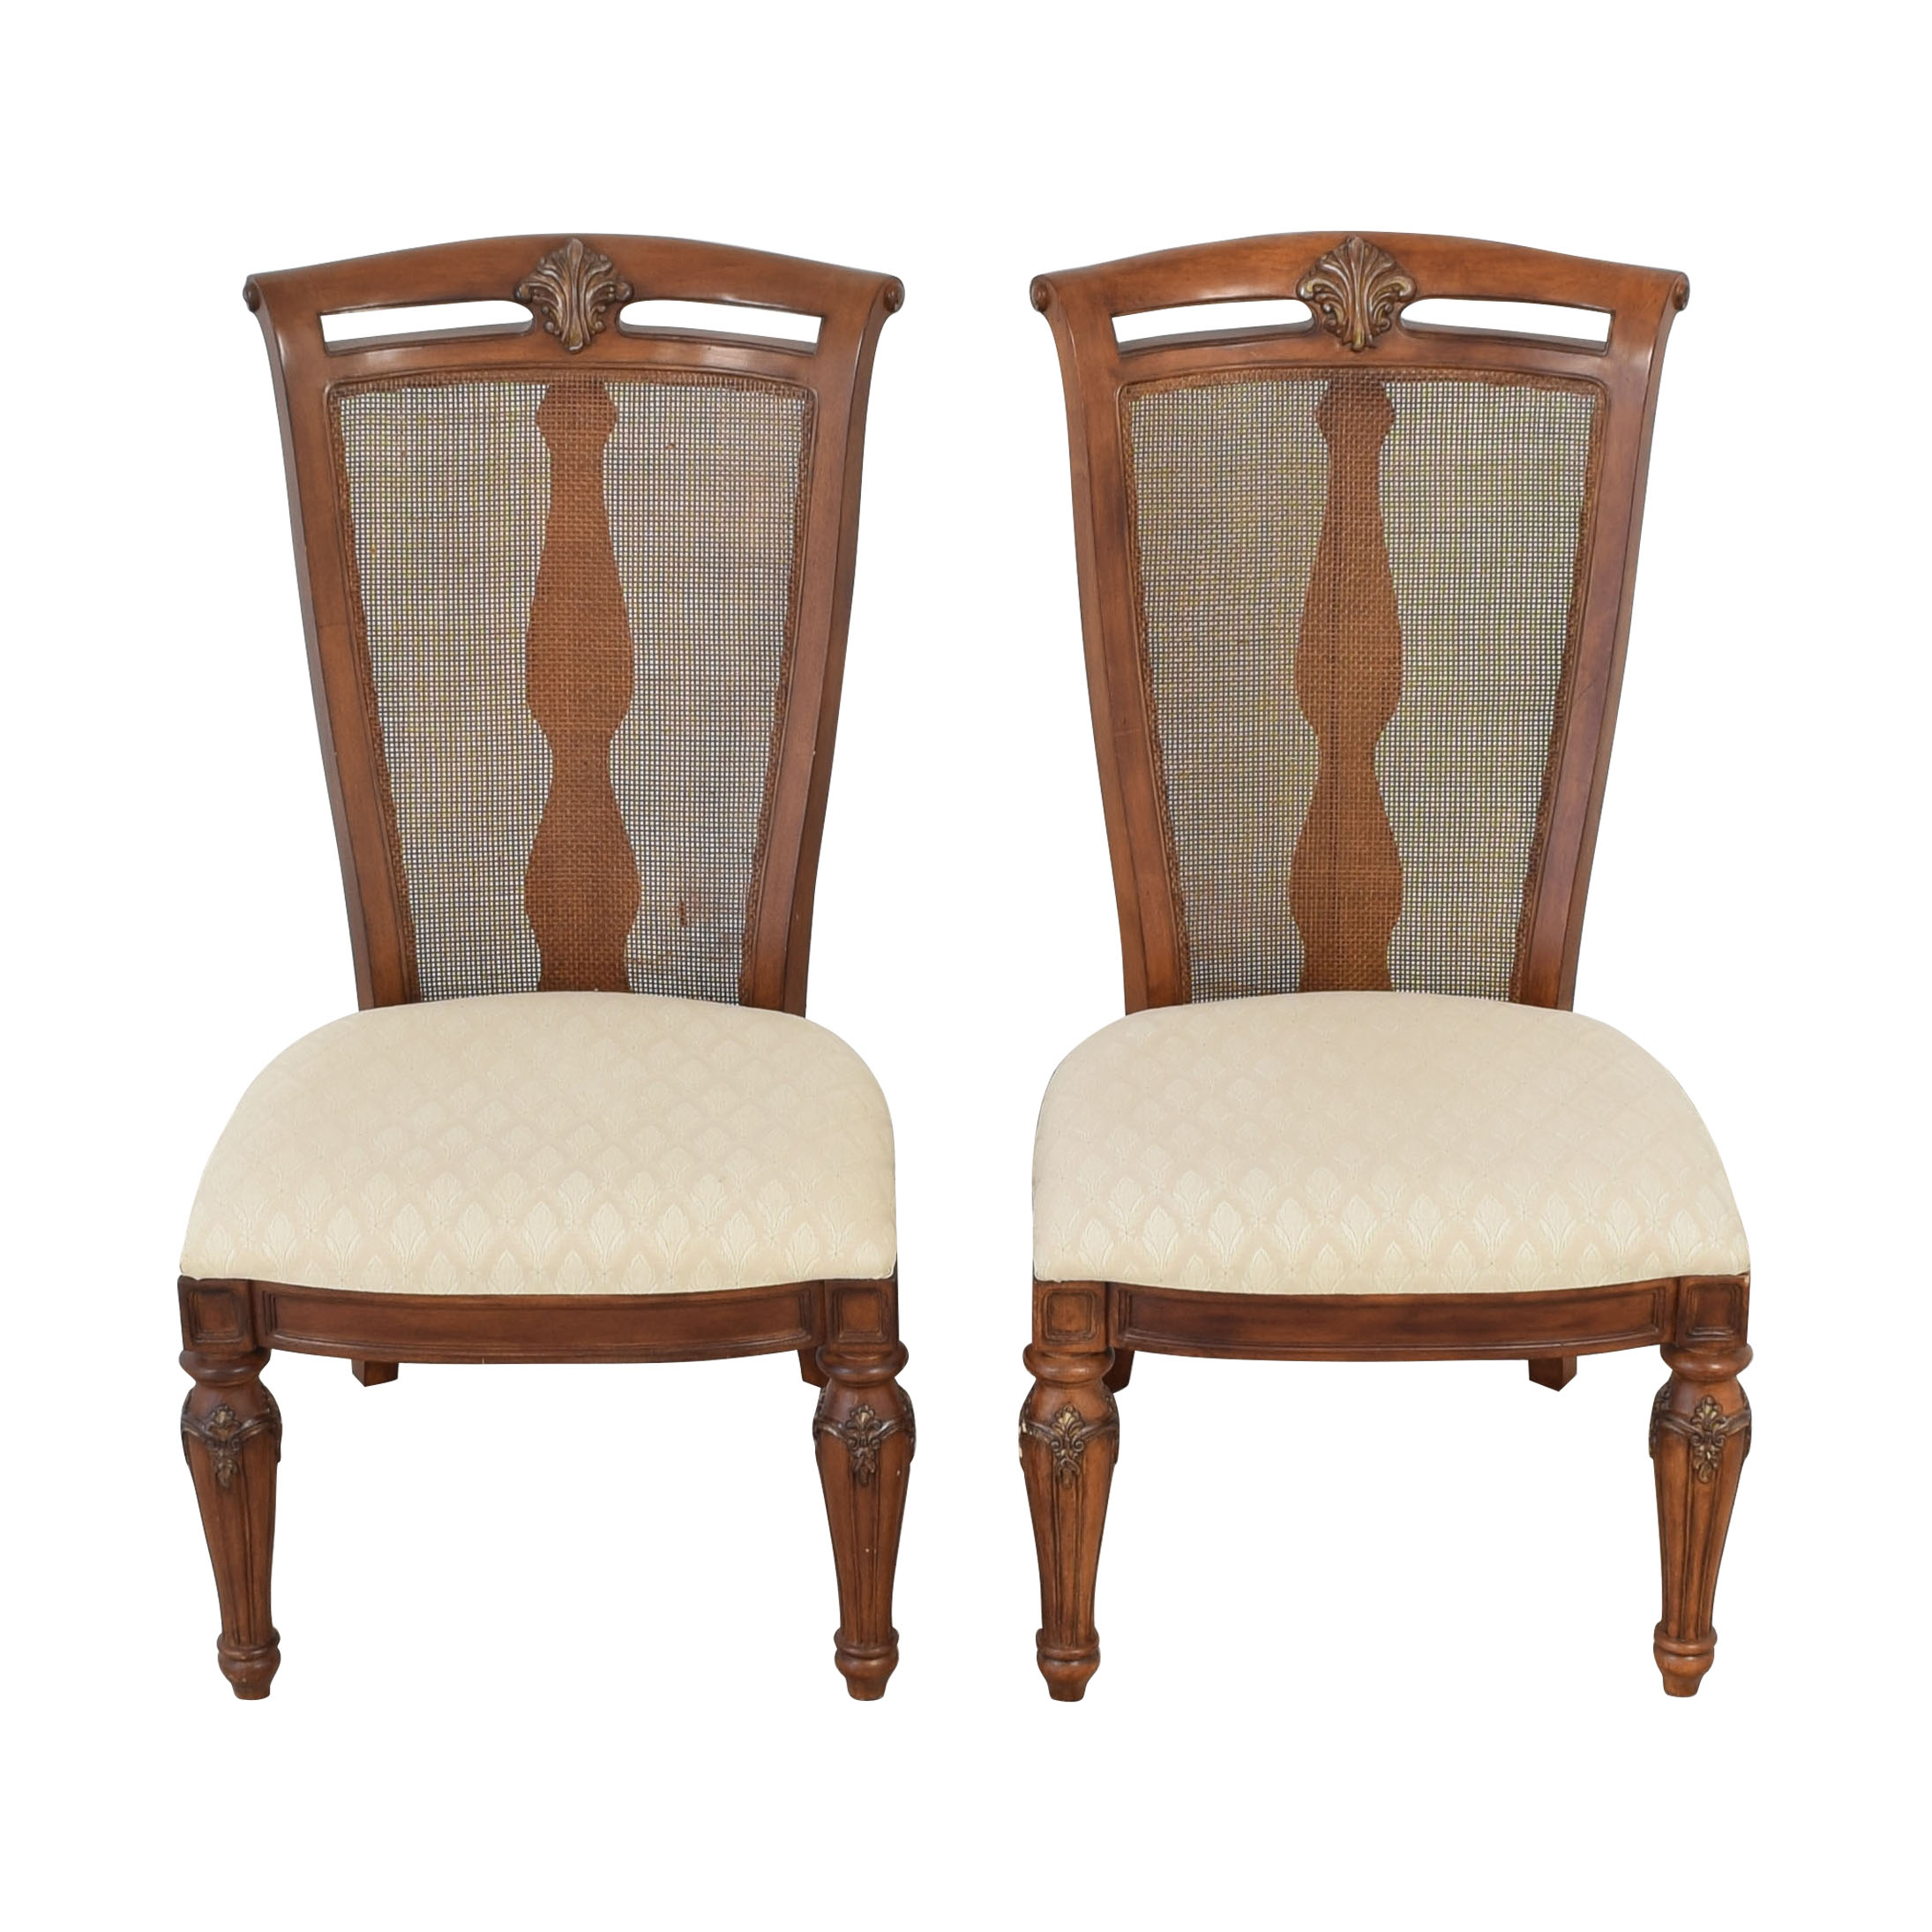 The Lane Company The Lane Company Side Dining Chairs discount